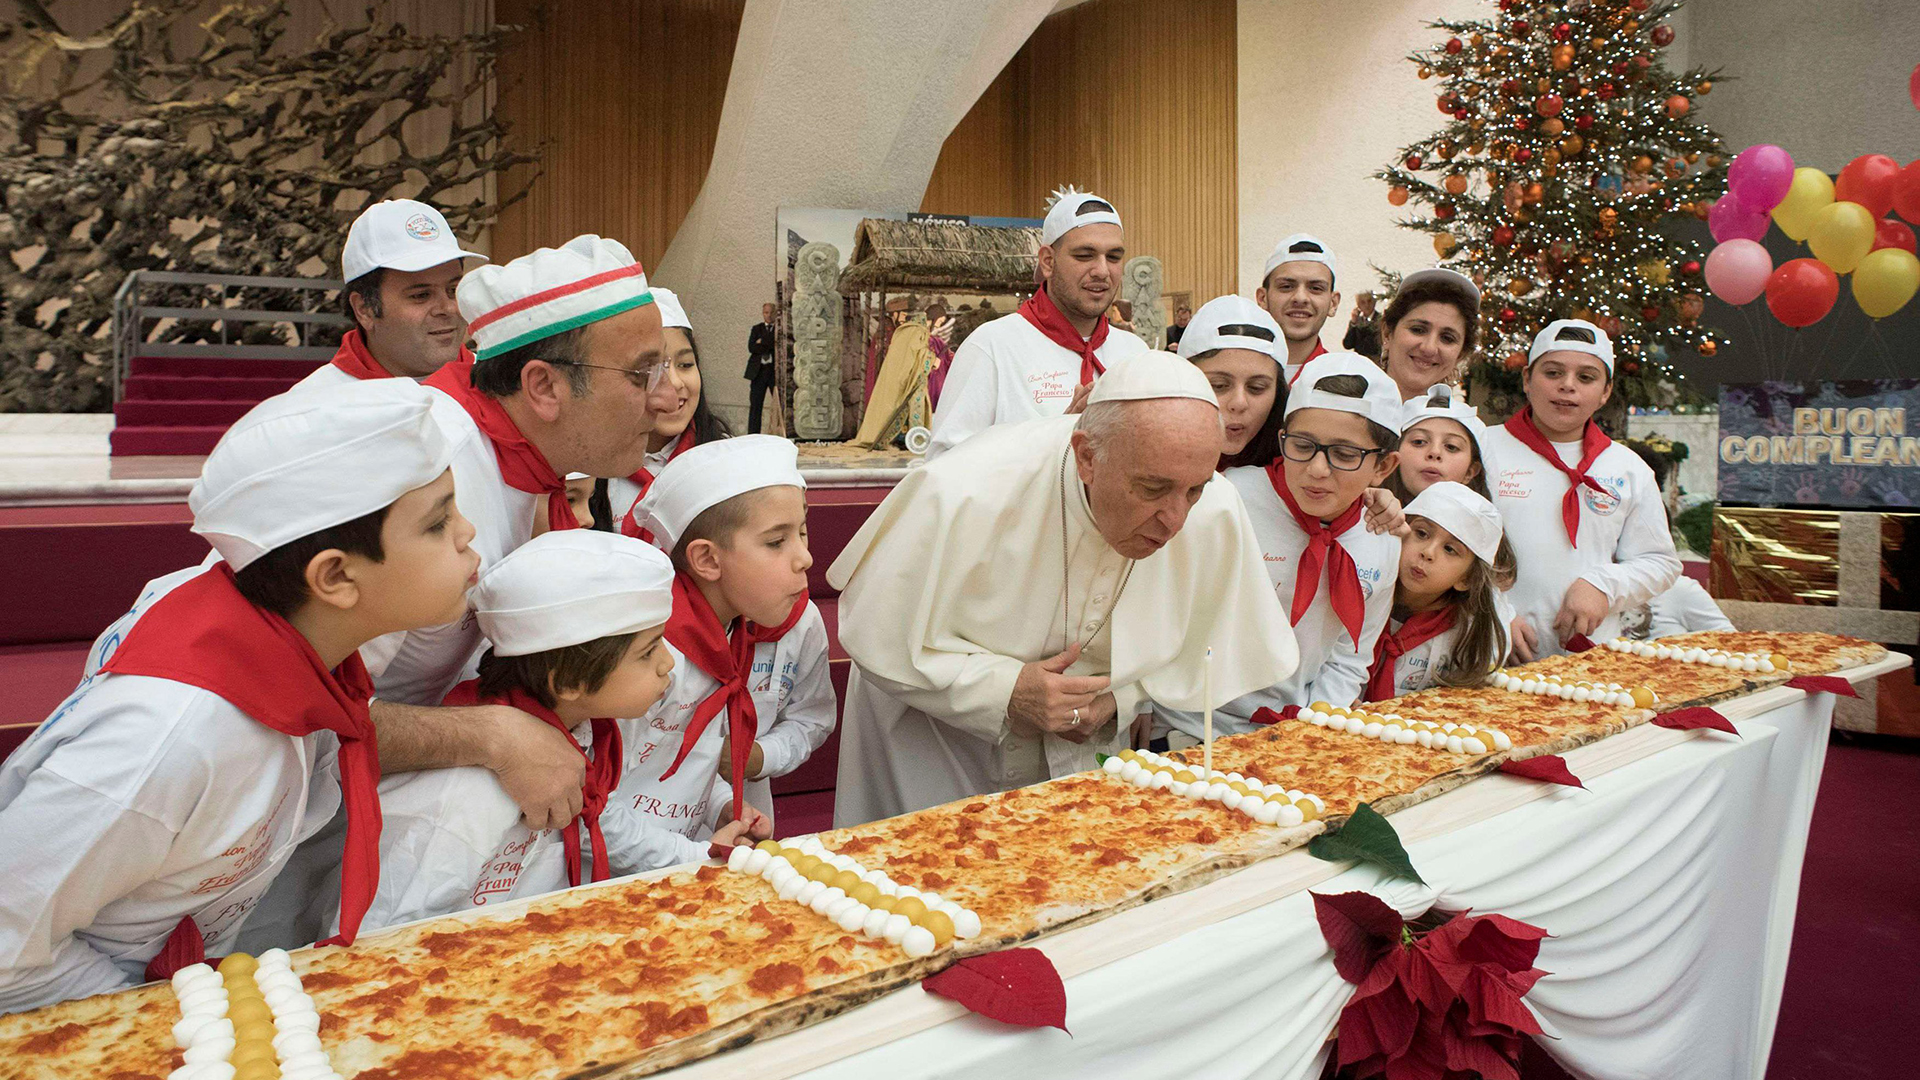 Pope Francis celebrated his 81st birthday with a 13-foot-long pizza